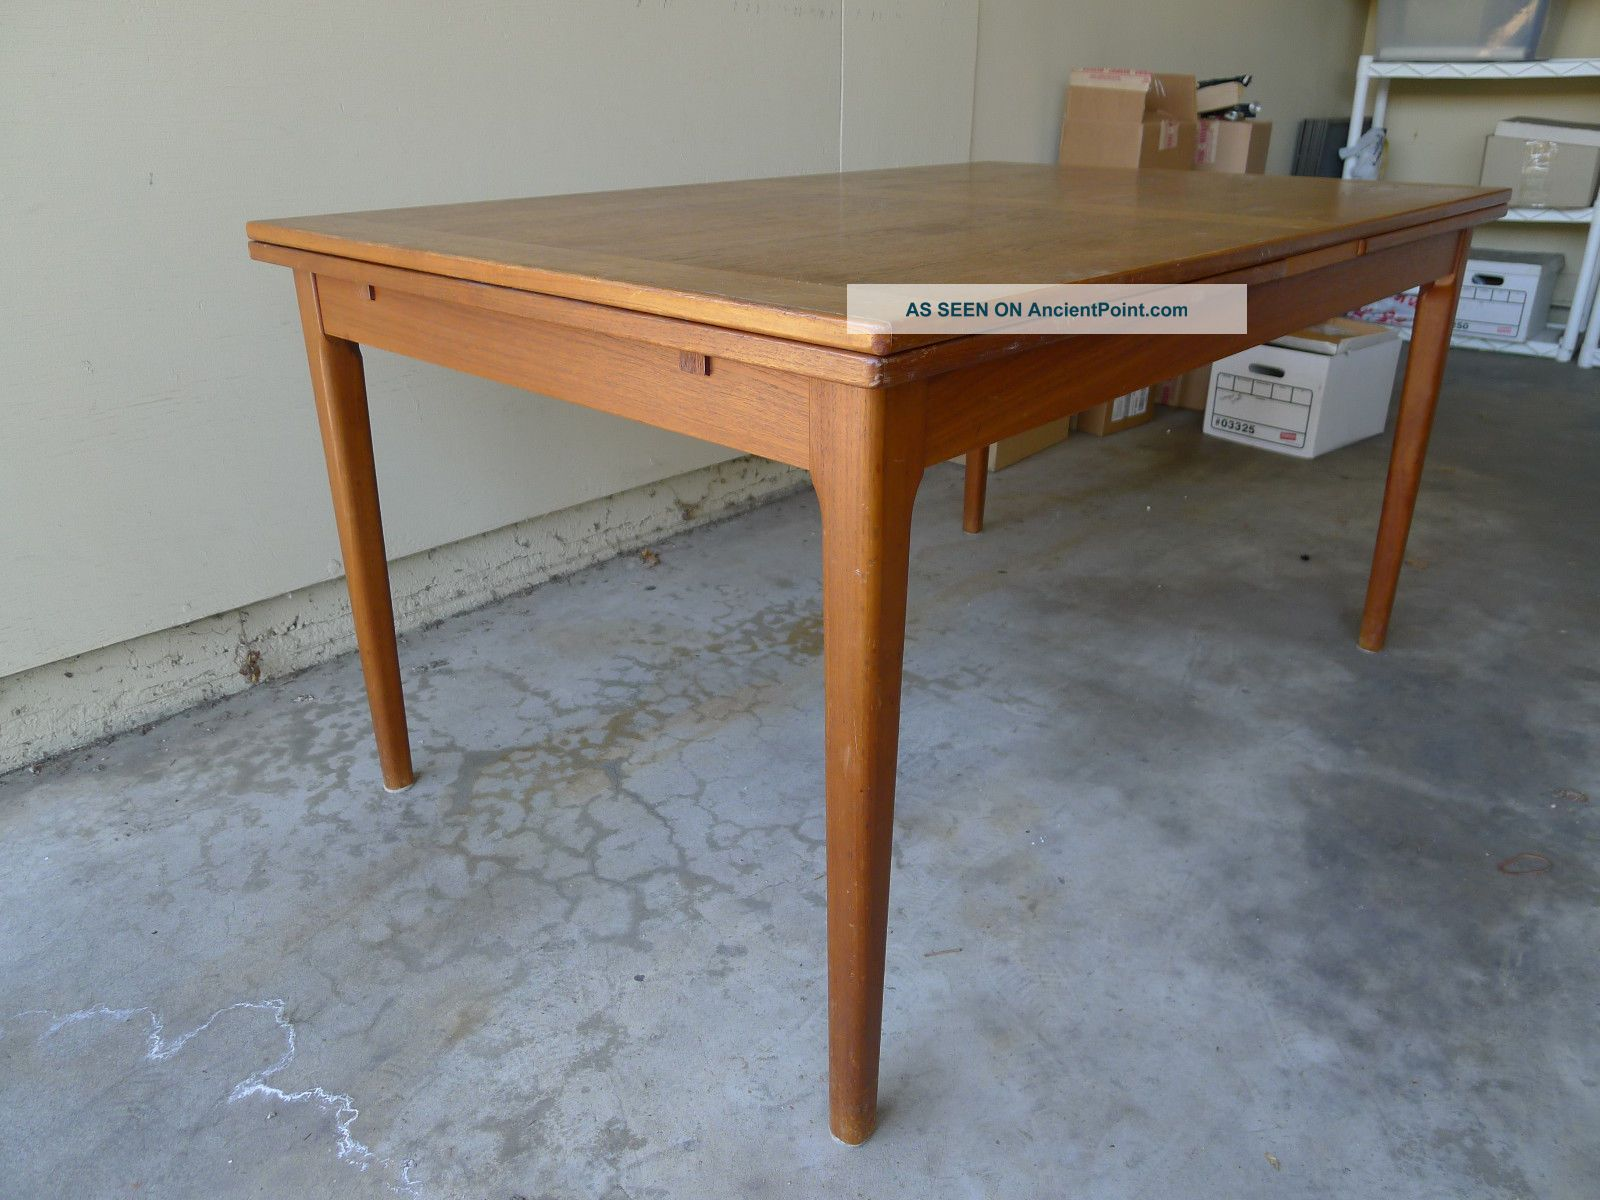 Dining Table With Sliding Extension 1900-1950 photo